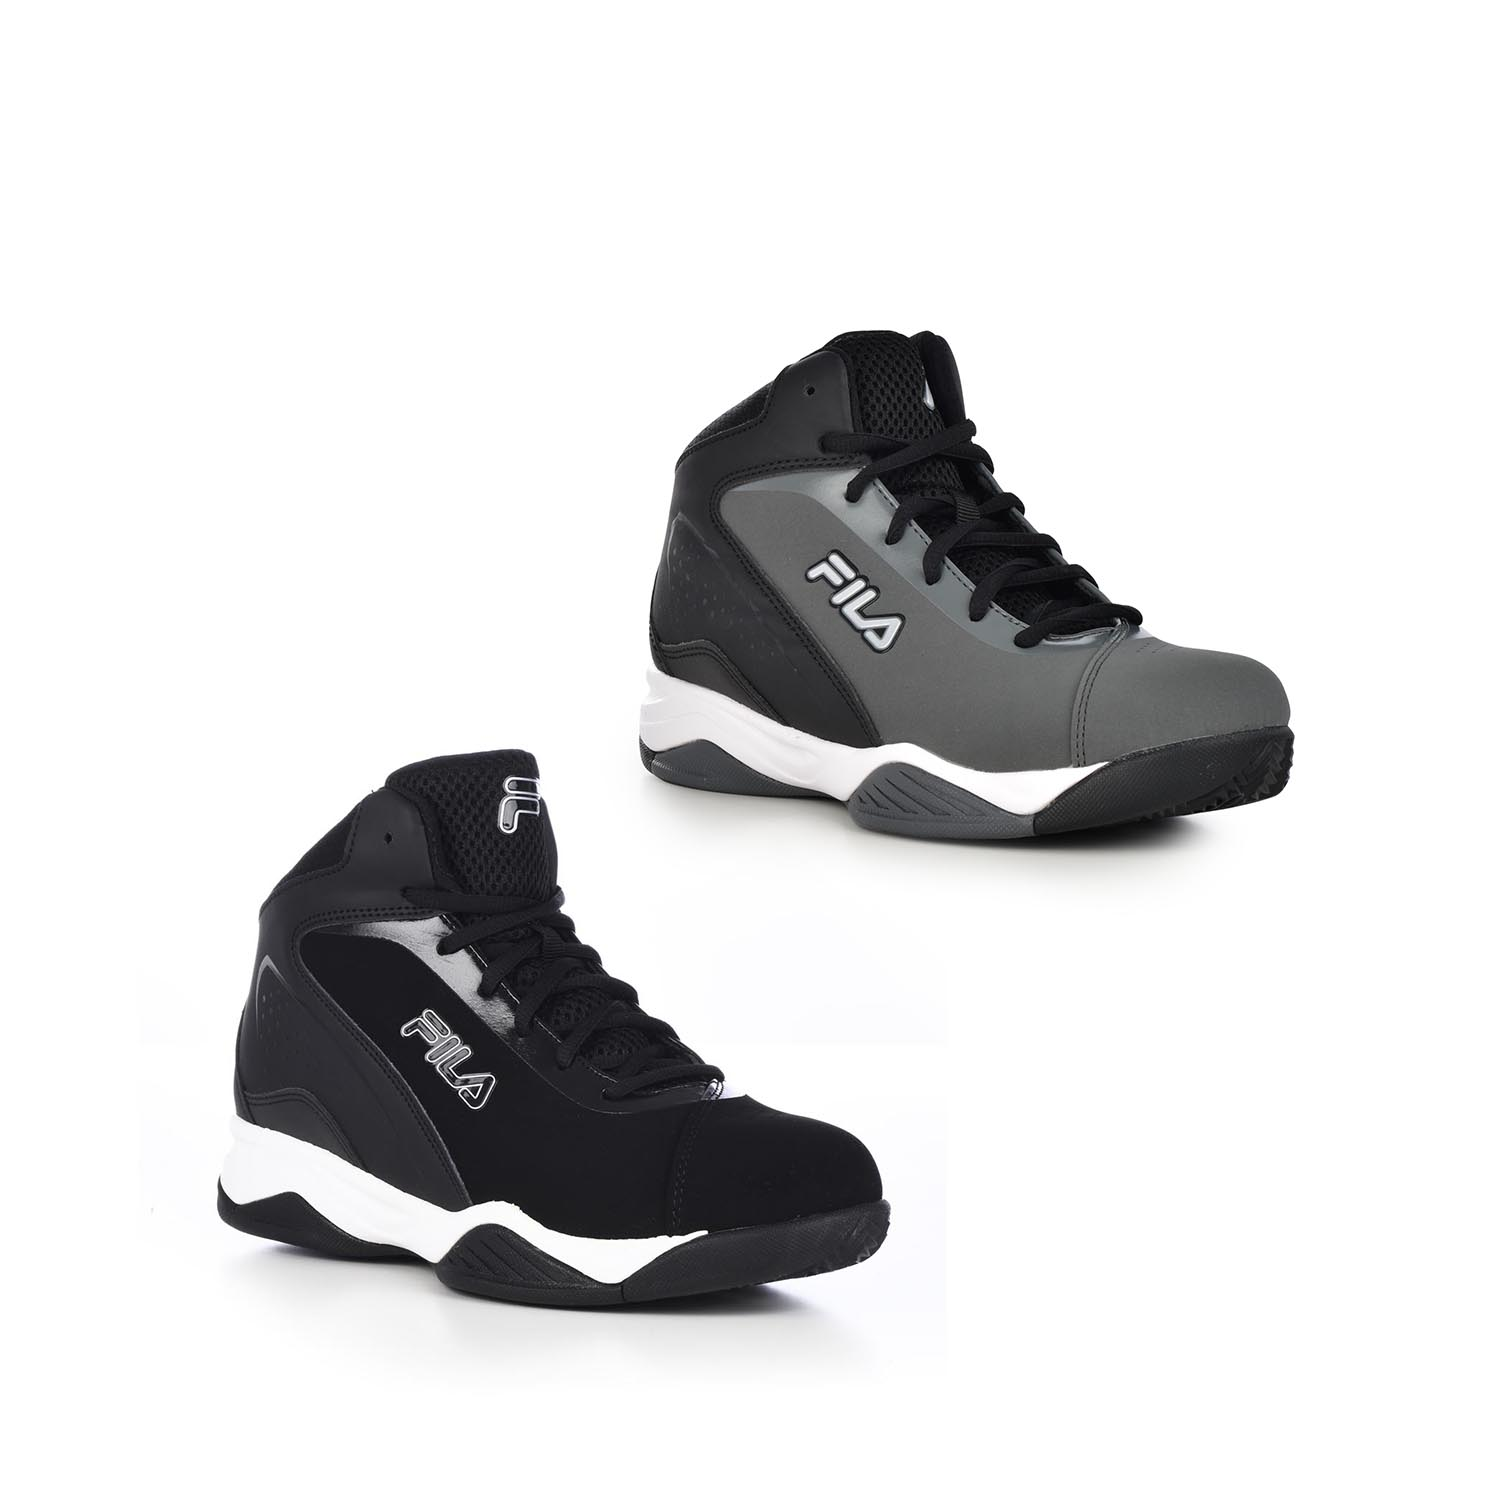 a6a49e35108 NEW FILA MEN S CONTINGENT MID BASKETBALL SHOE NBA NCAA 1SB13017. Item  Details